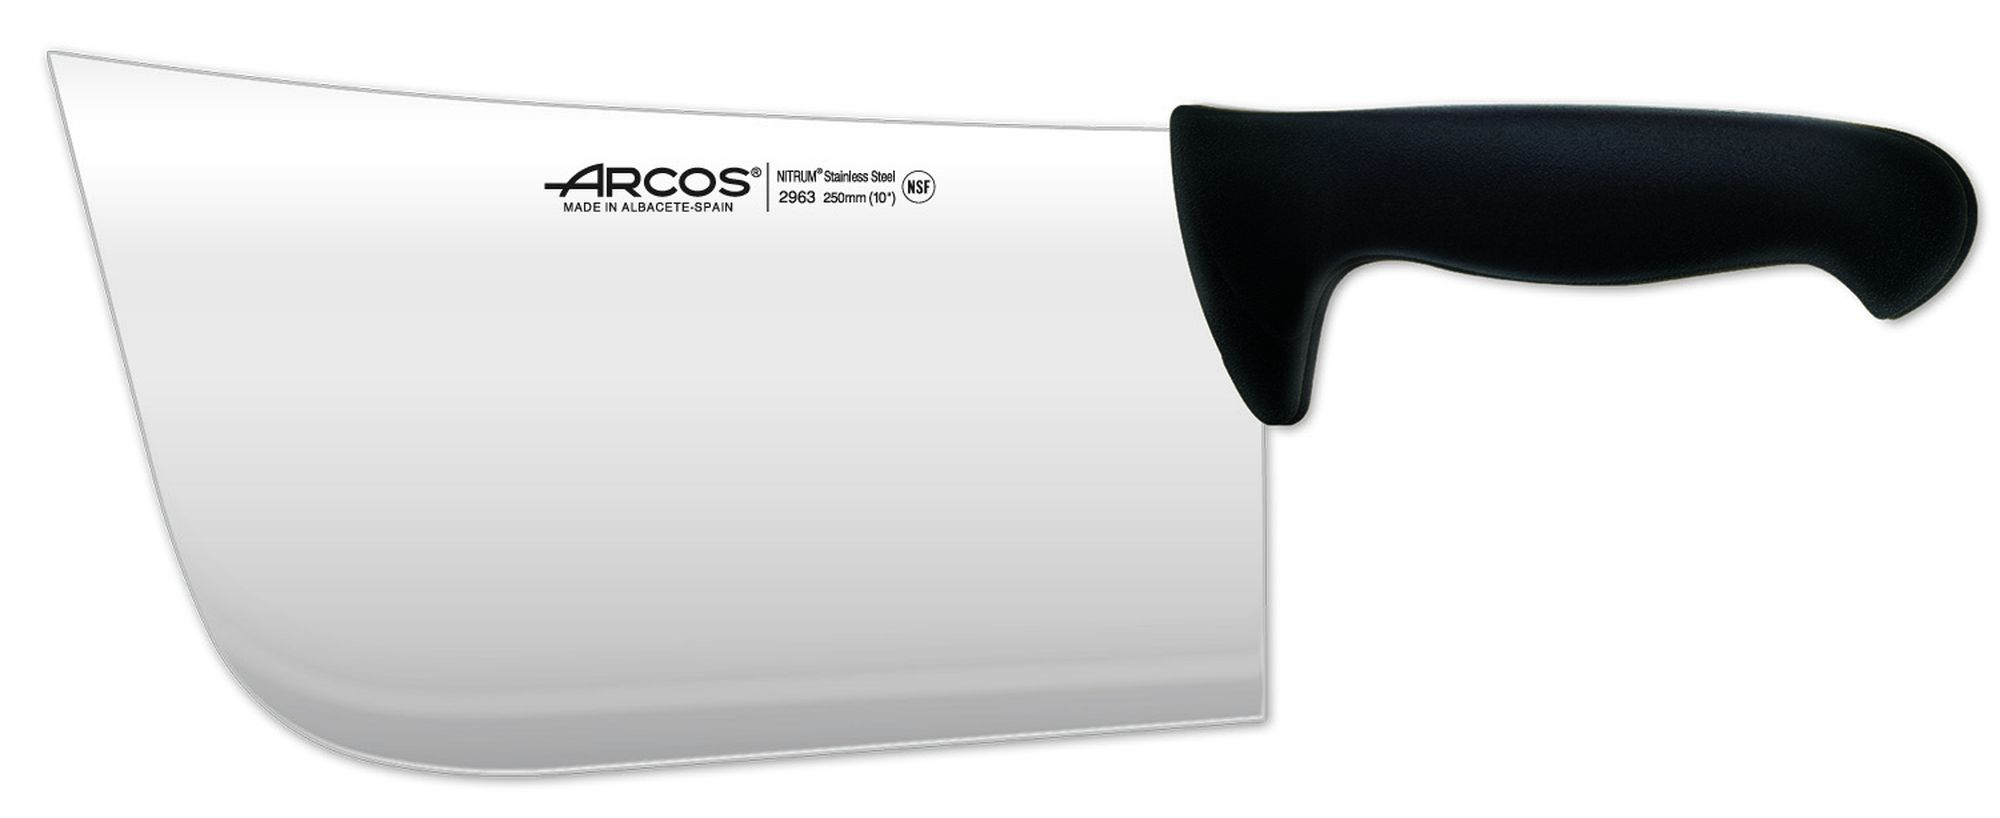 Cleaver Arcos ref.: 296325